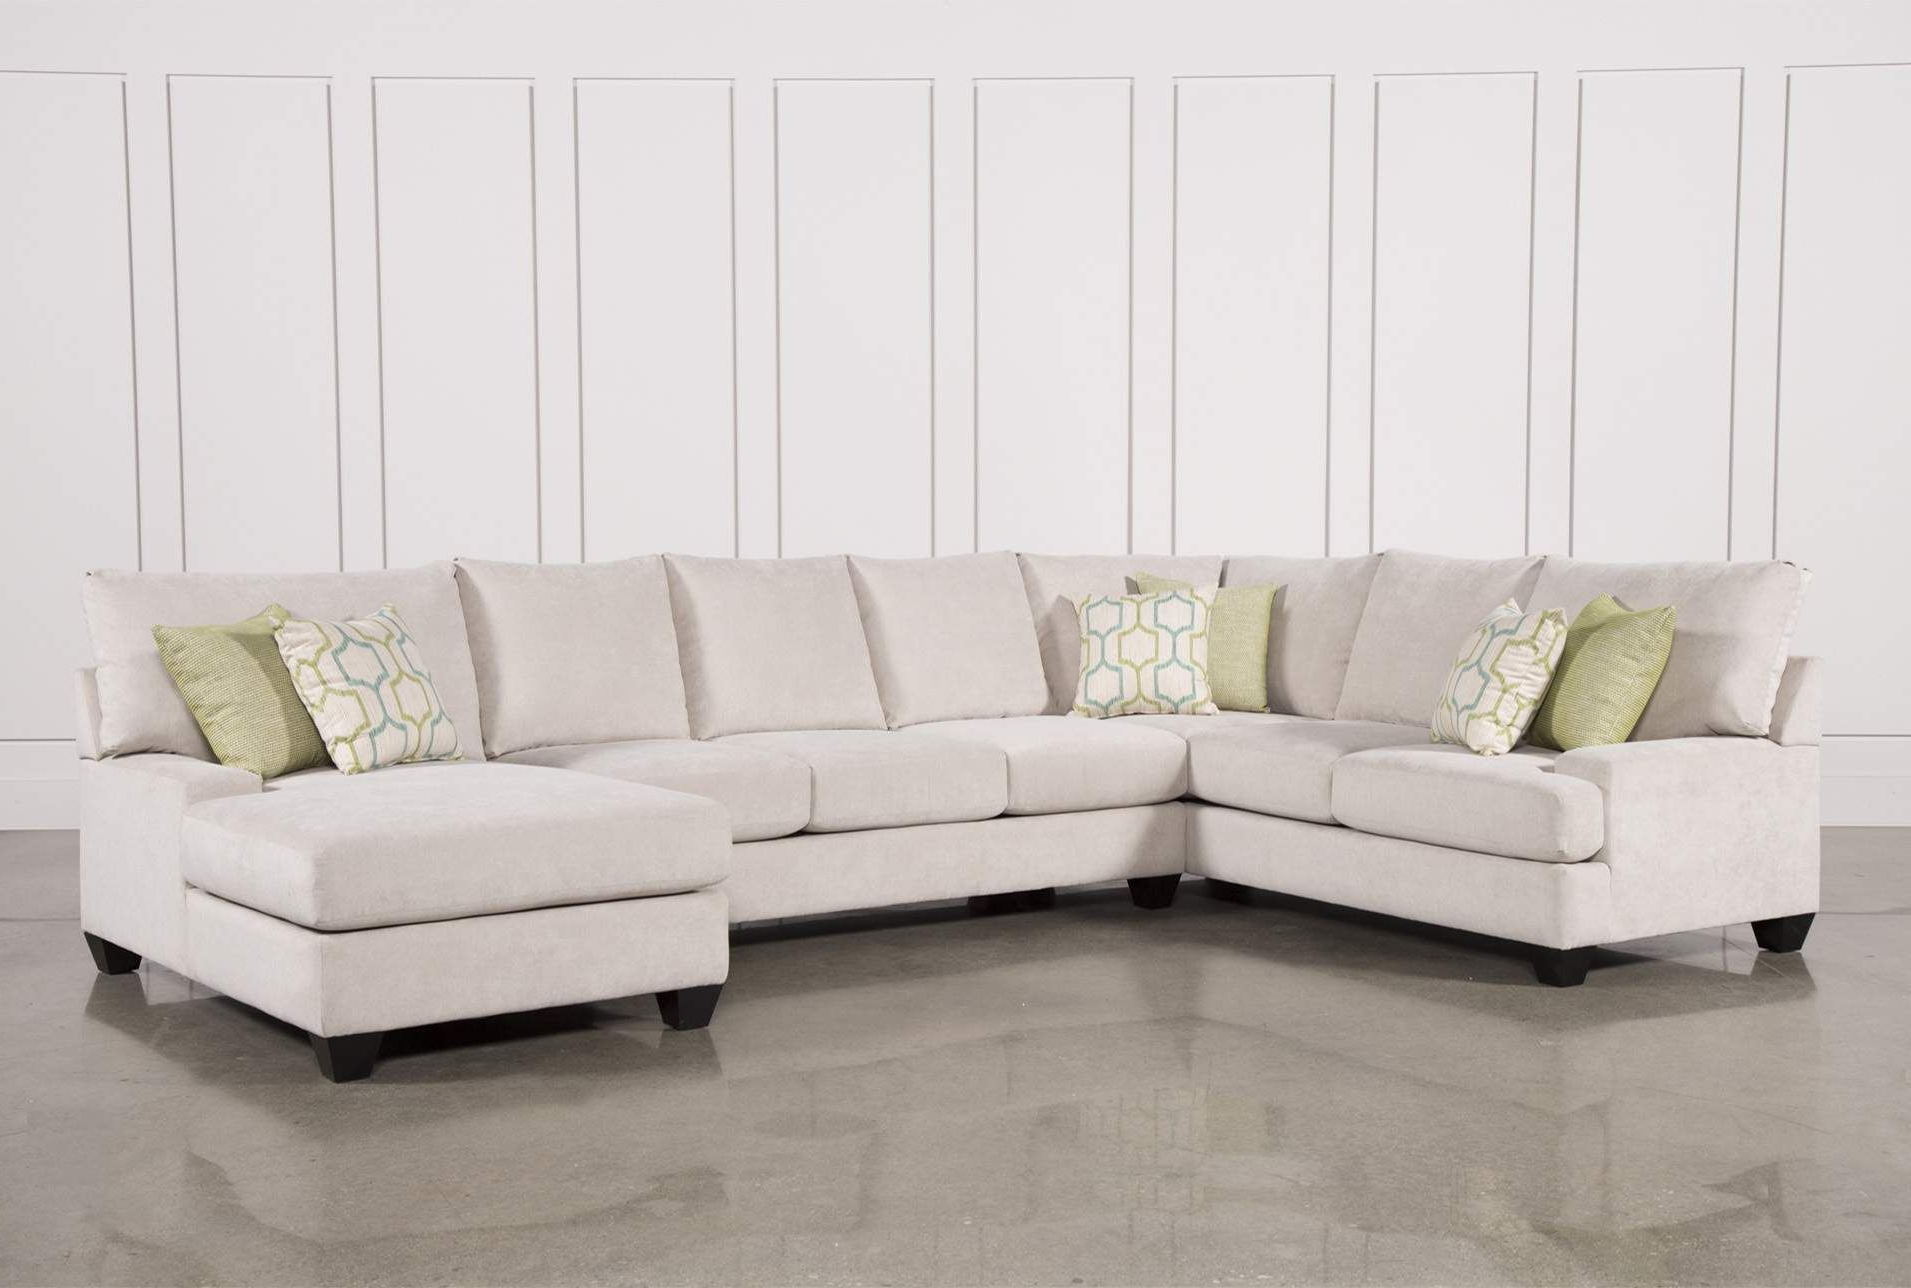 Most Recently Released Harper Foam 3 Piece Sectional W/raf Chaise Pertaining To Meyer 3 Piece Sectionals With Raf Chaise (View 18 of 20)